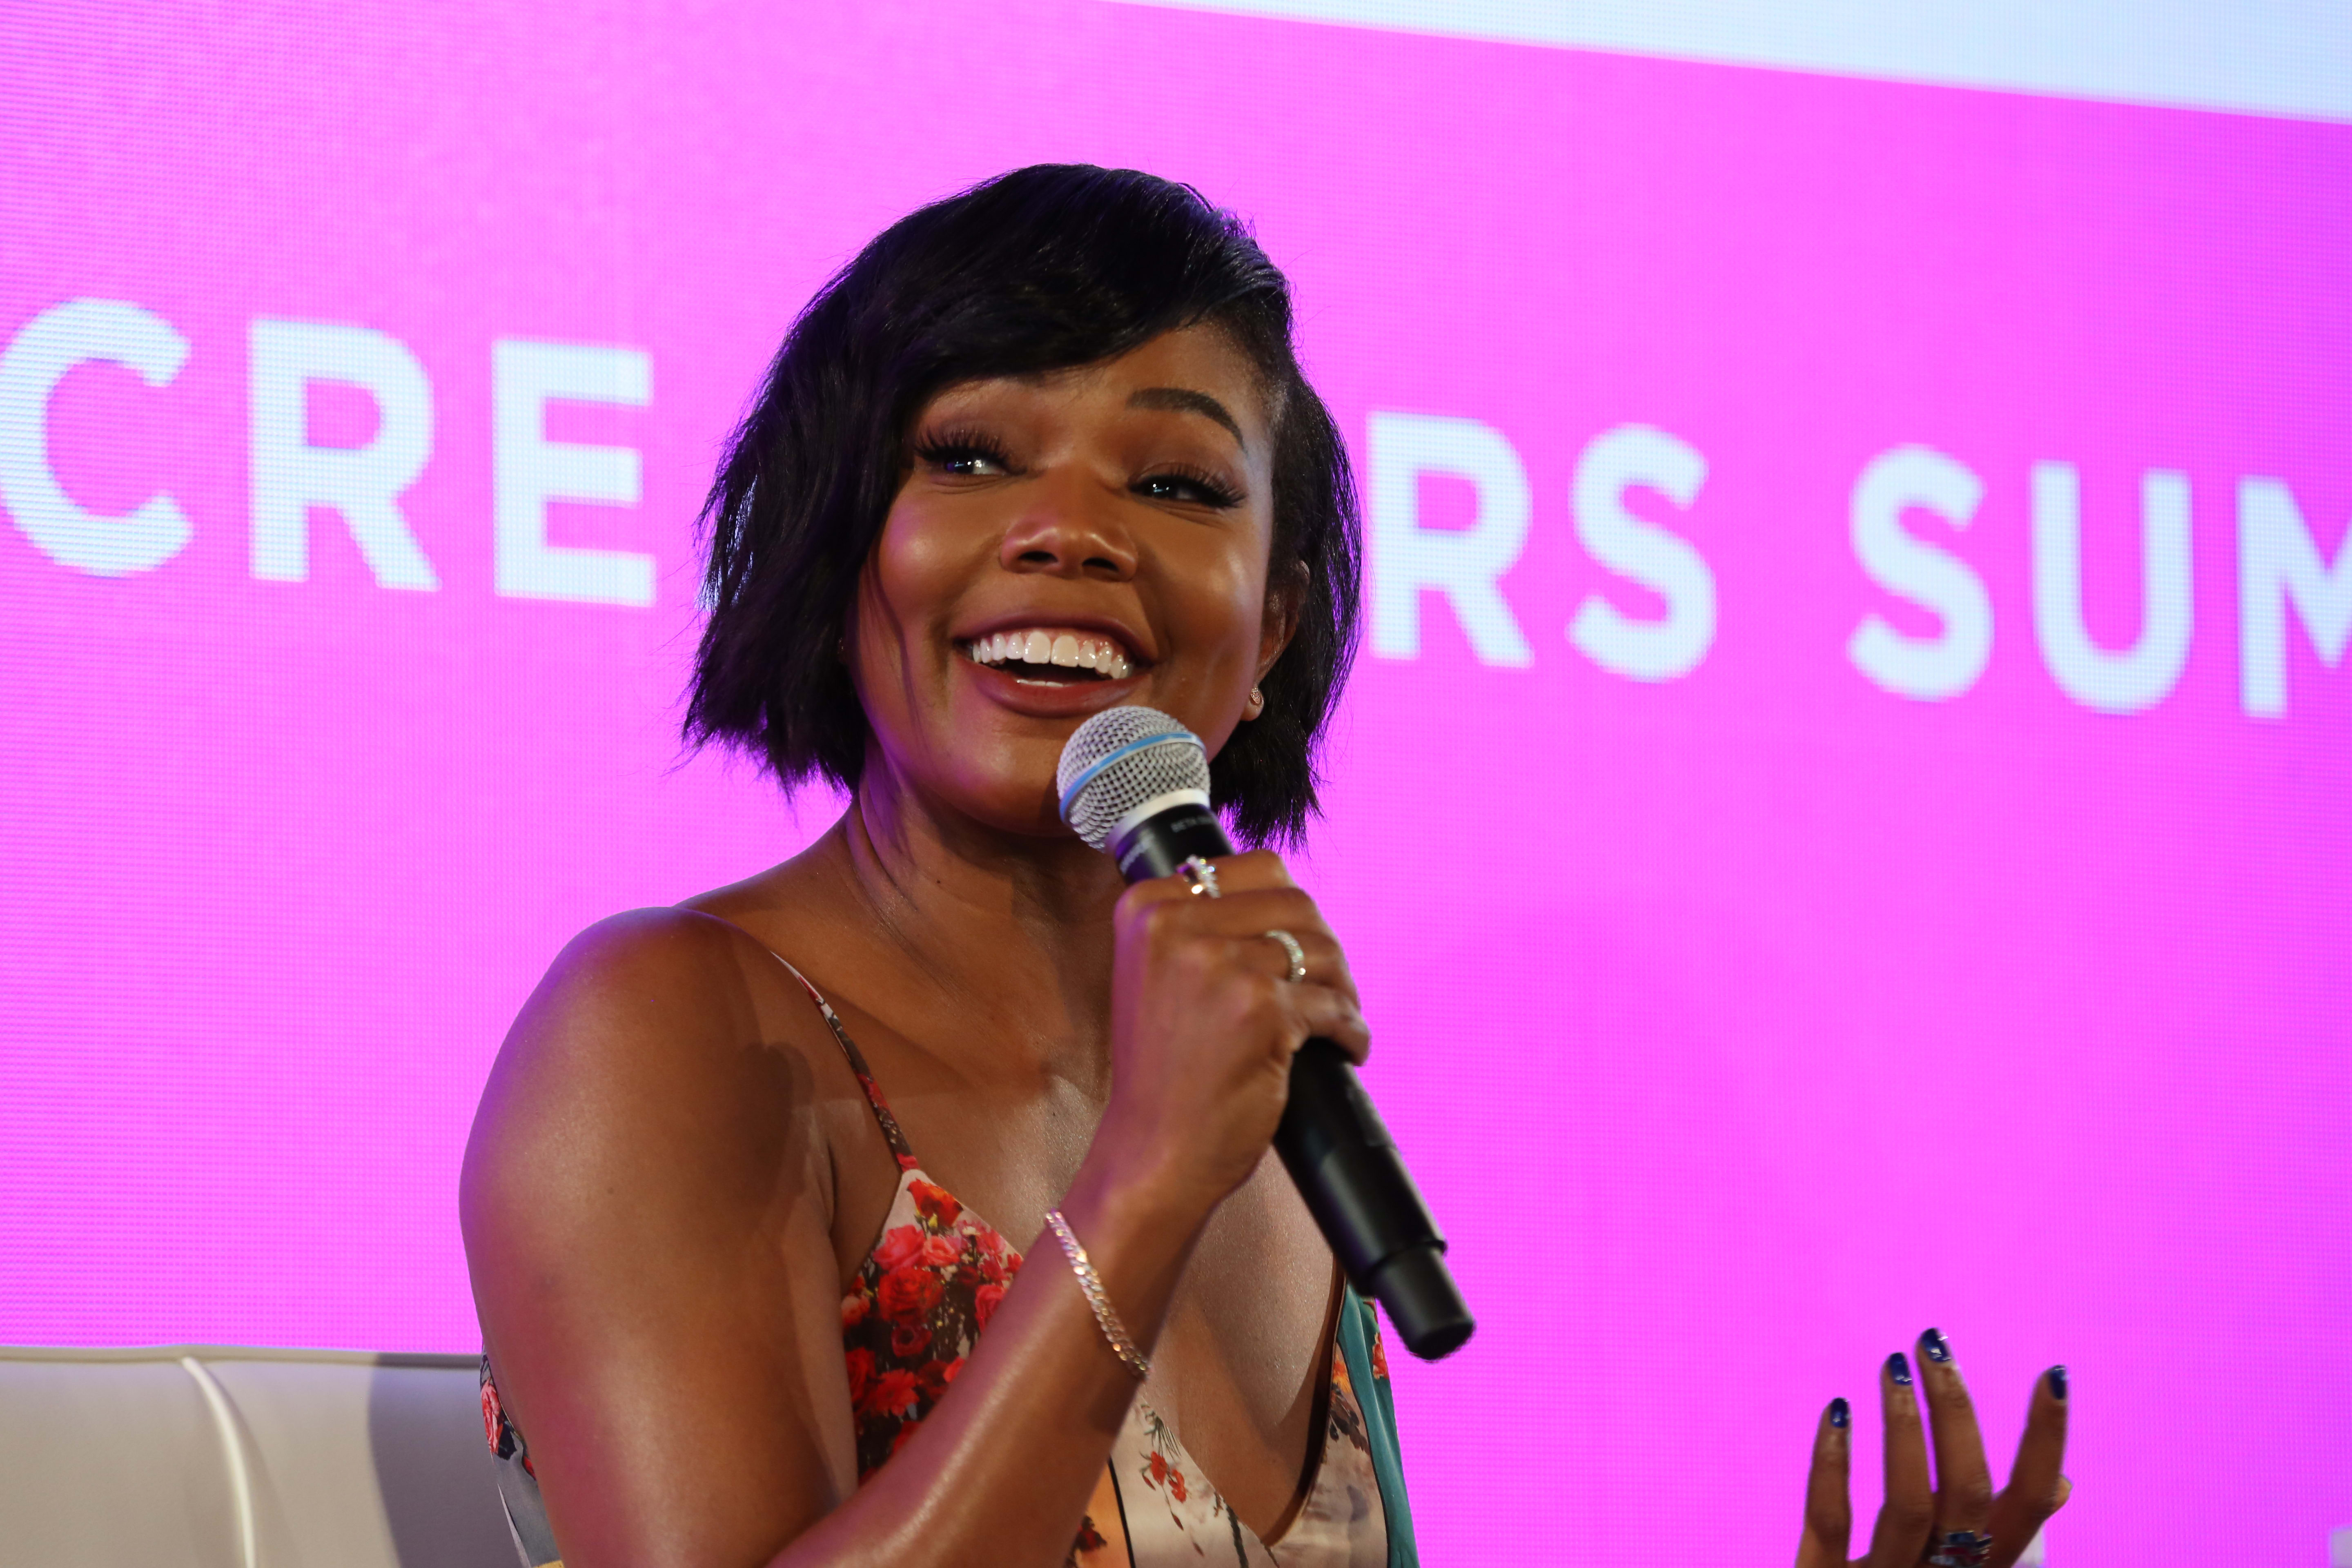 Gabrielle Union on stage at the BlogHer18 conference in New York